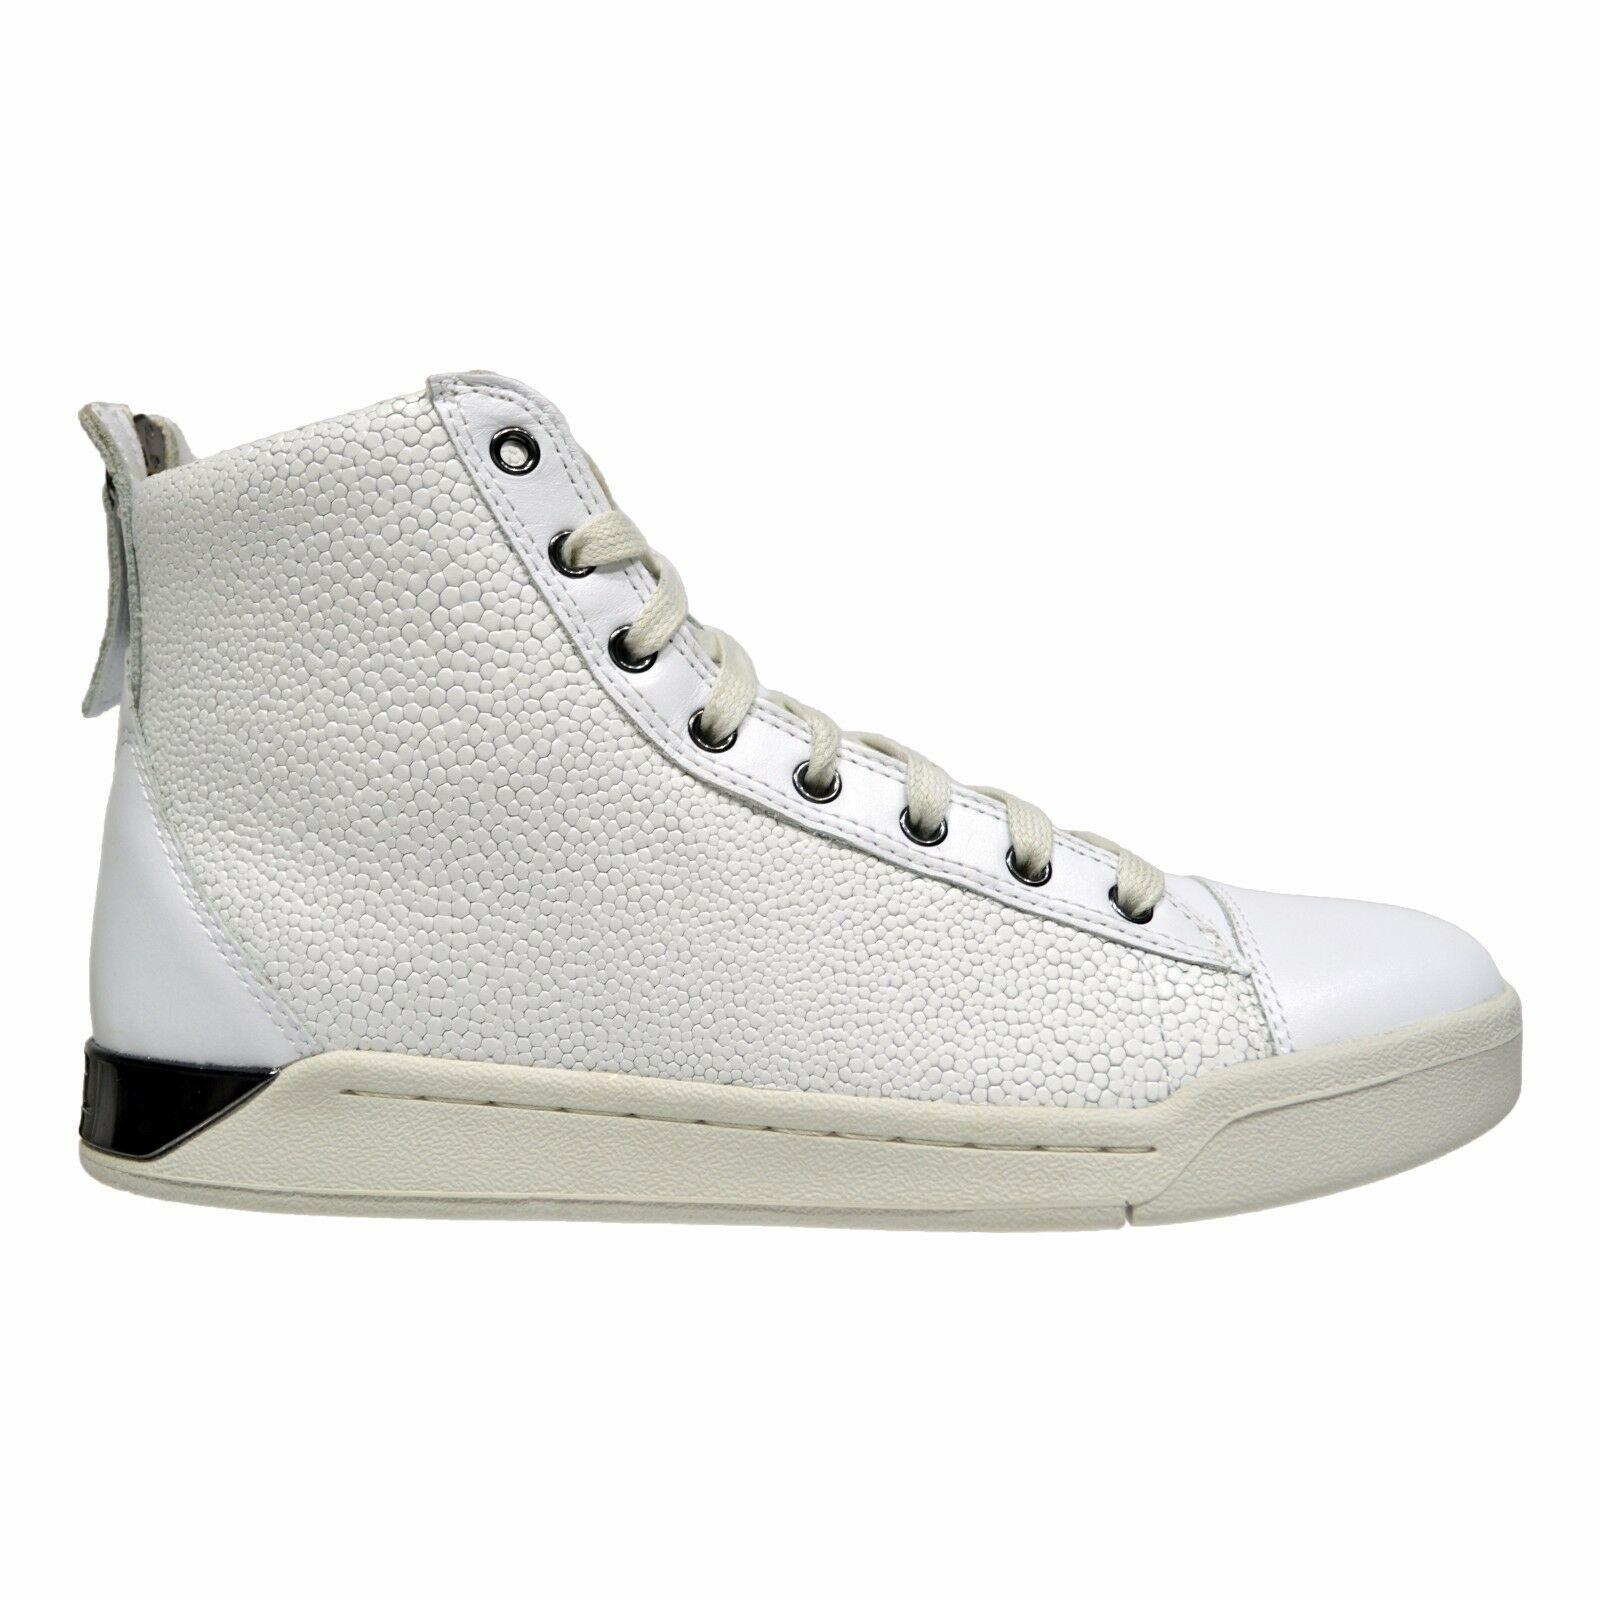 Diesel Diamond Men's High Top Leather Fashion Sneakers White